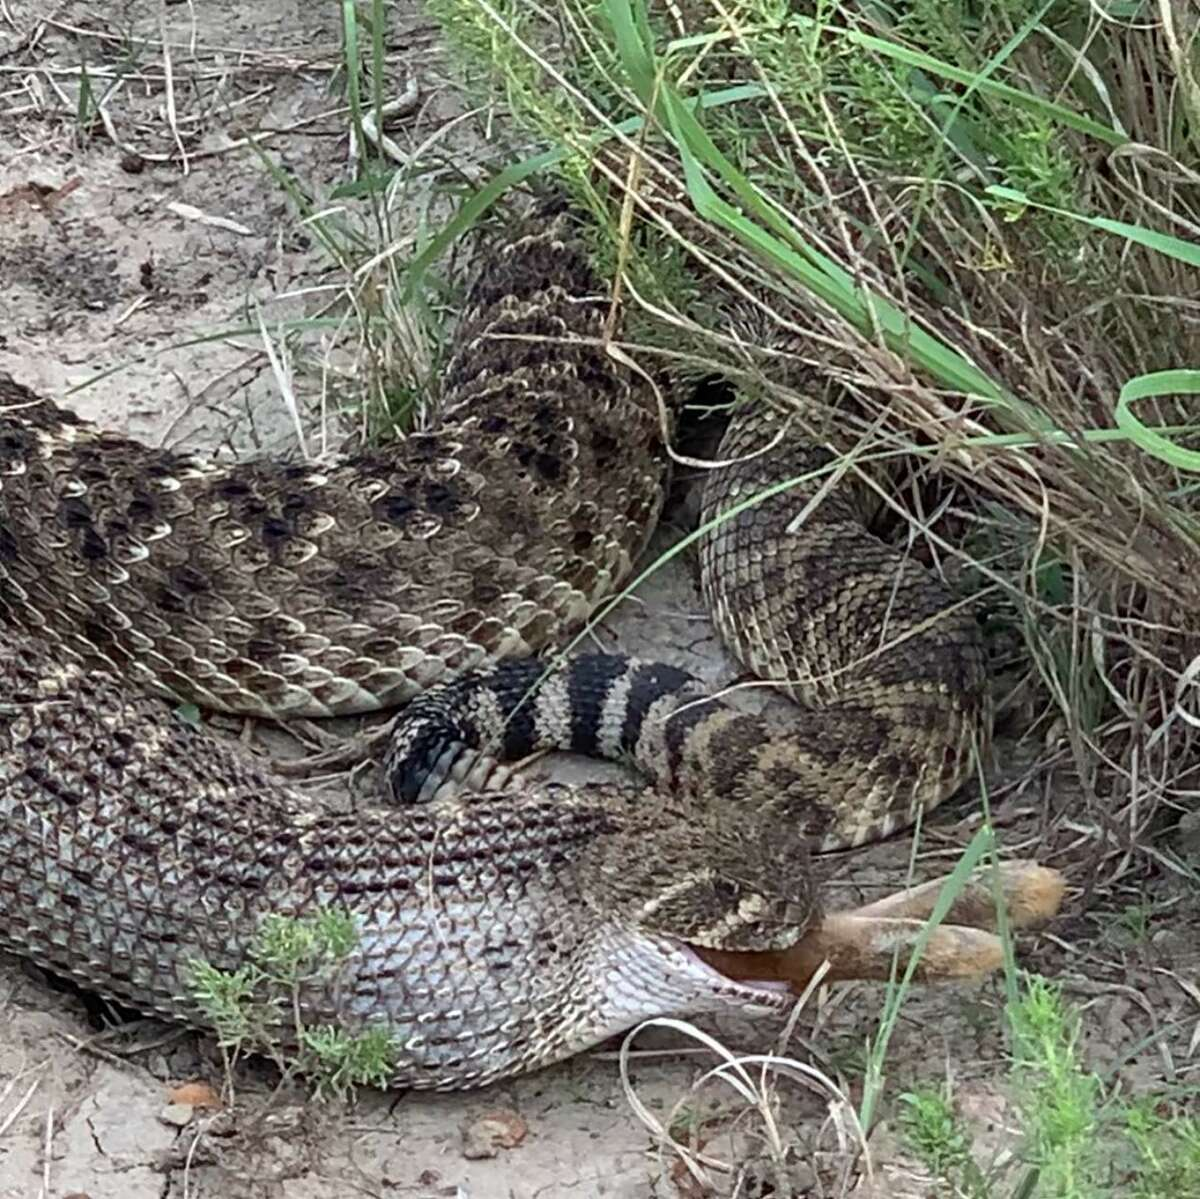 Brandon Nichols from Eagle Pass took a video of a massive rattlesnake hunting a rabbit, describing it as